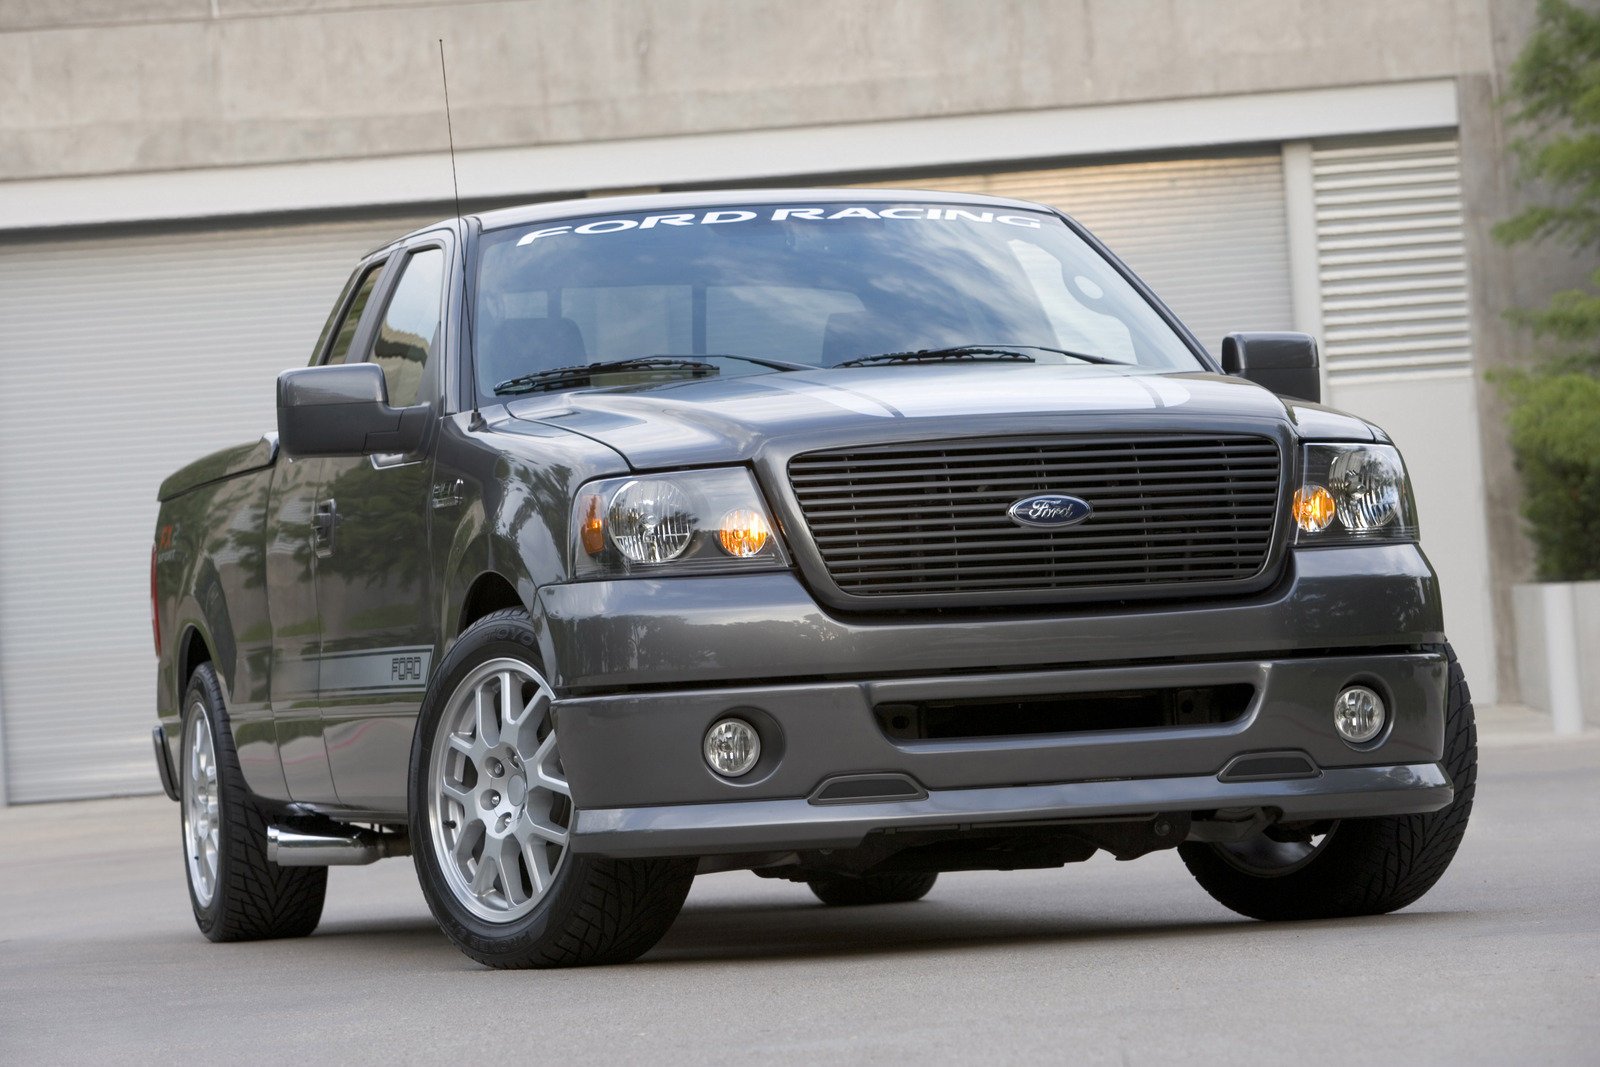 Ford F150 Aftermarket Parts >> 2007 Ford F-150 Project FX2 Sport | Top Speed